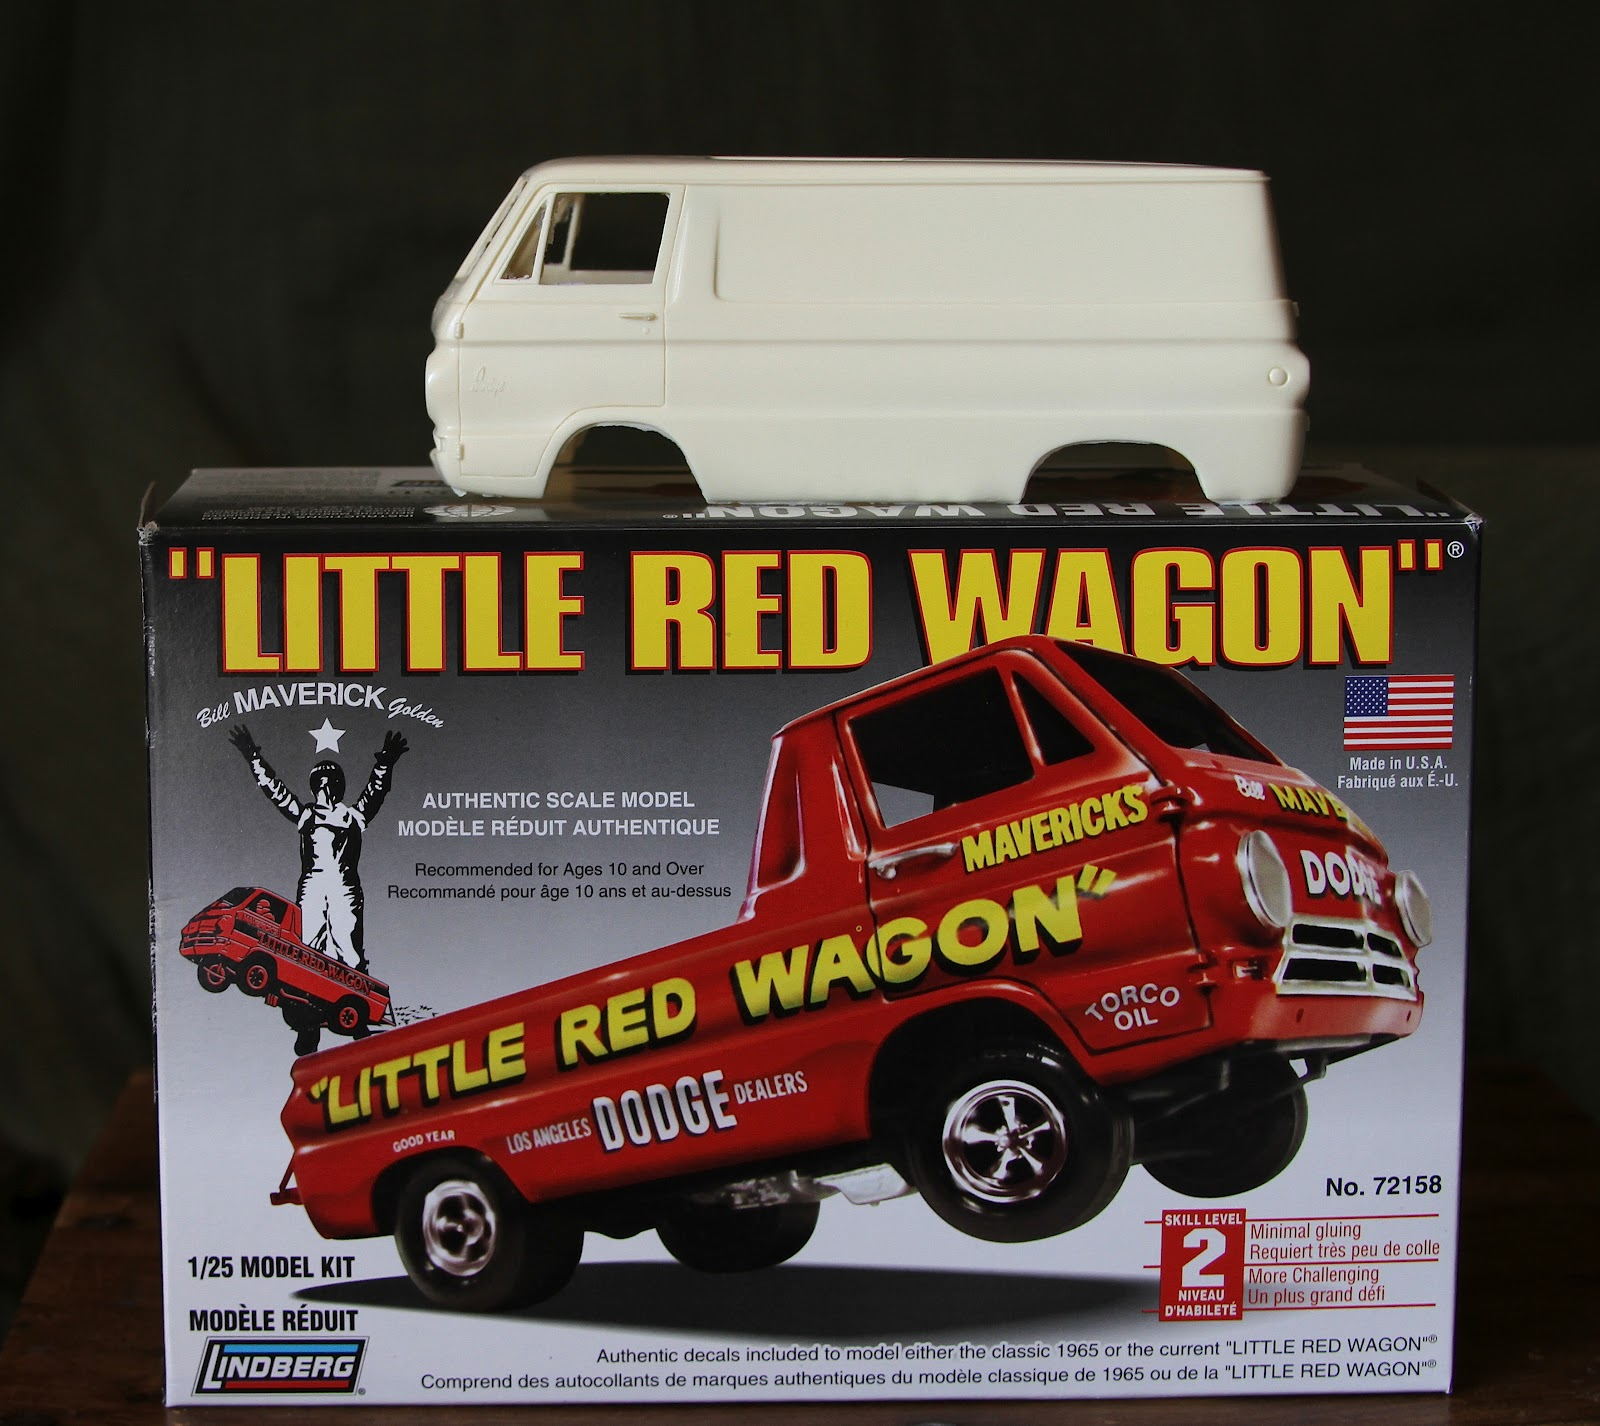 Little Red Wagon Video Cast